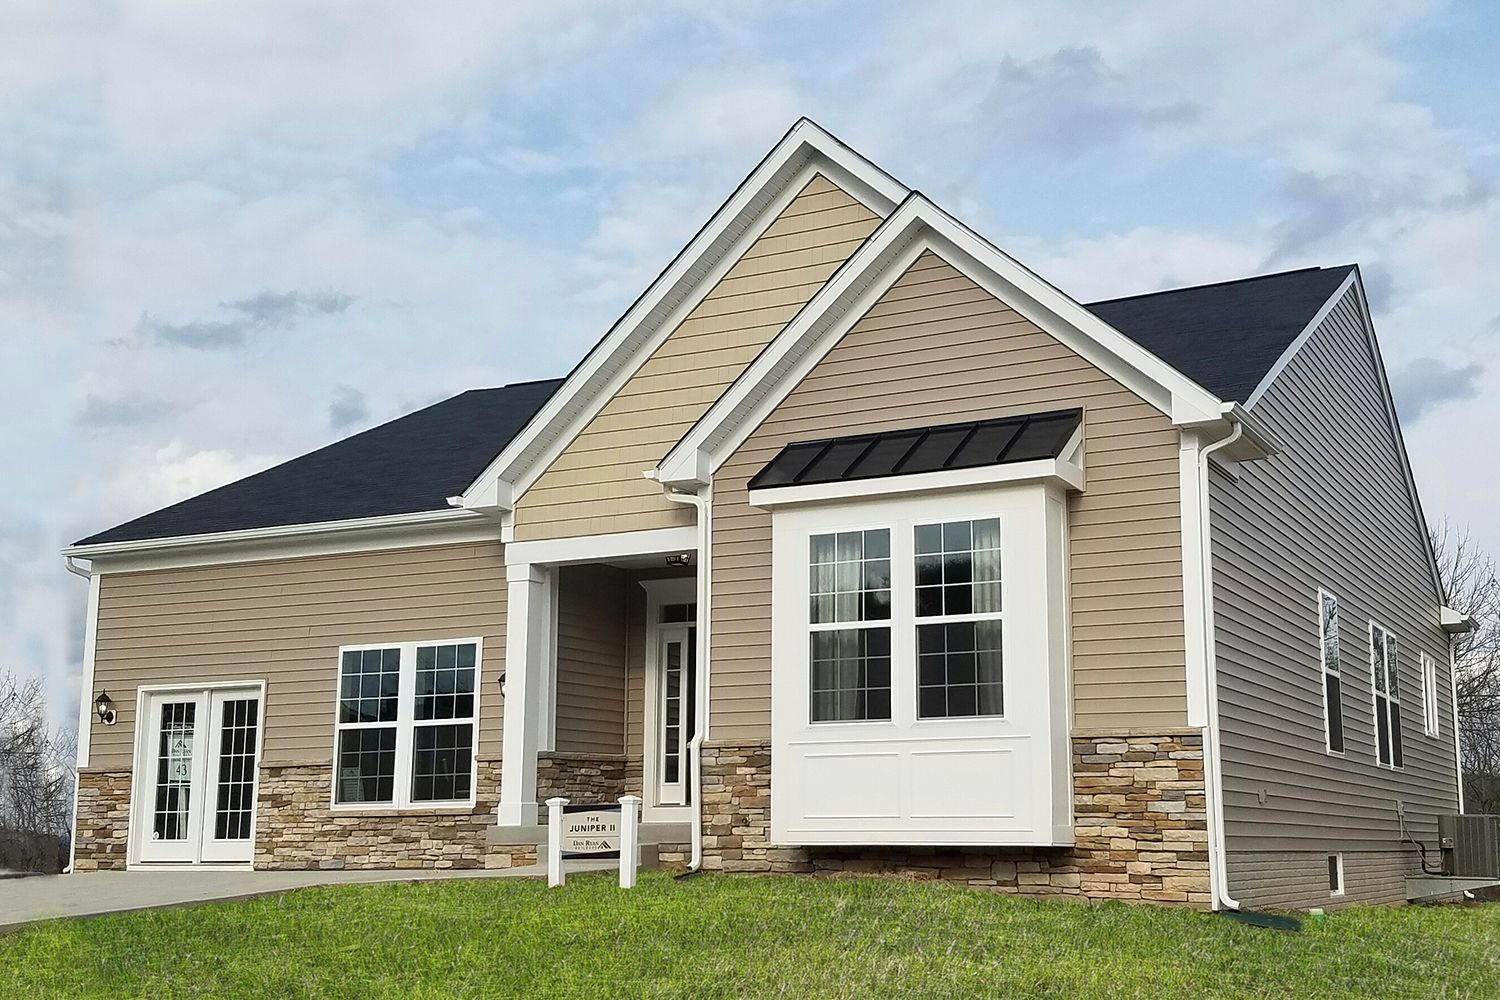 Single Family for Sale at Juniper Ii 43 Woodbury Drive Fairmont, West Virginia 26554 United States